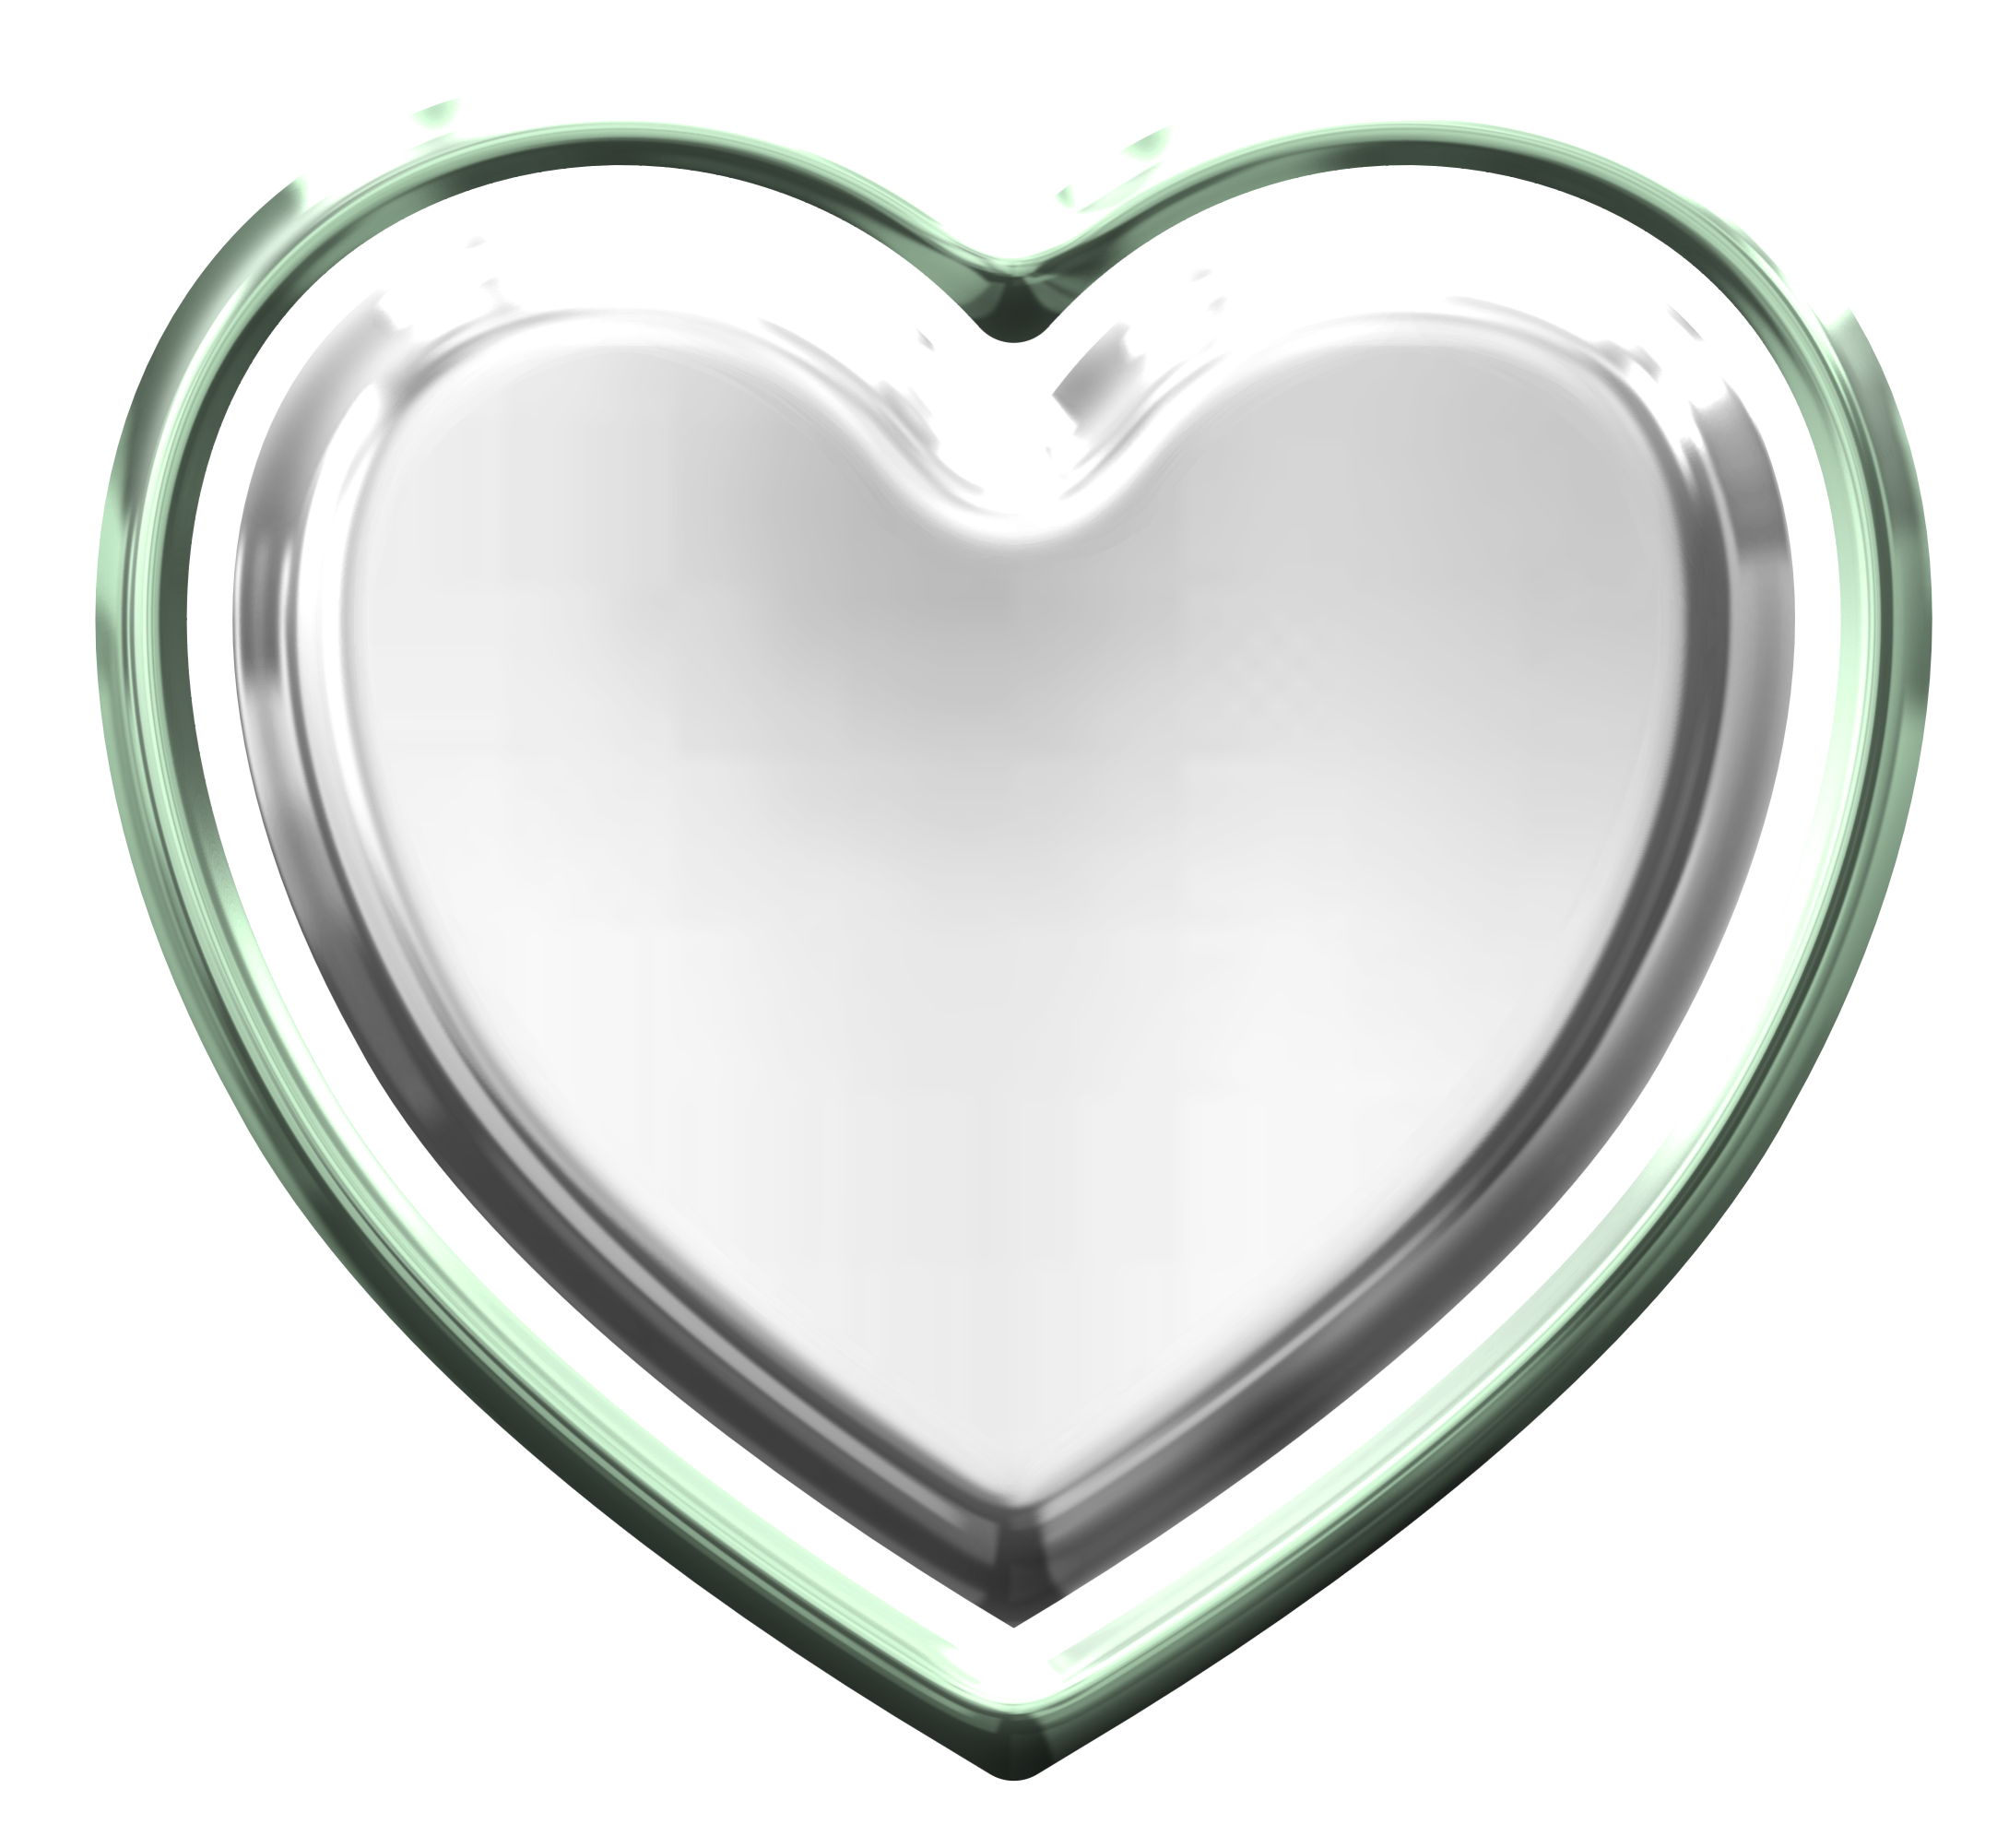 Mint heart png. Silver transparent images group